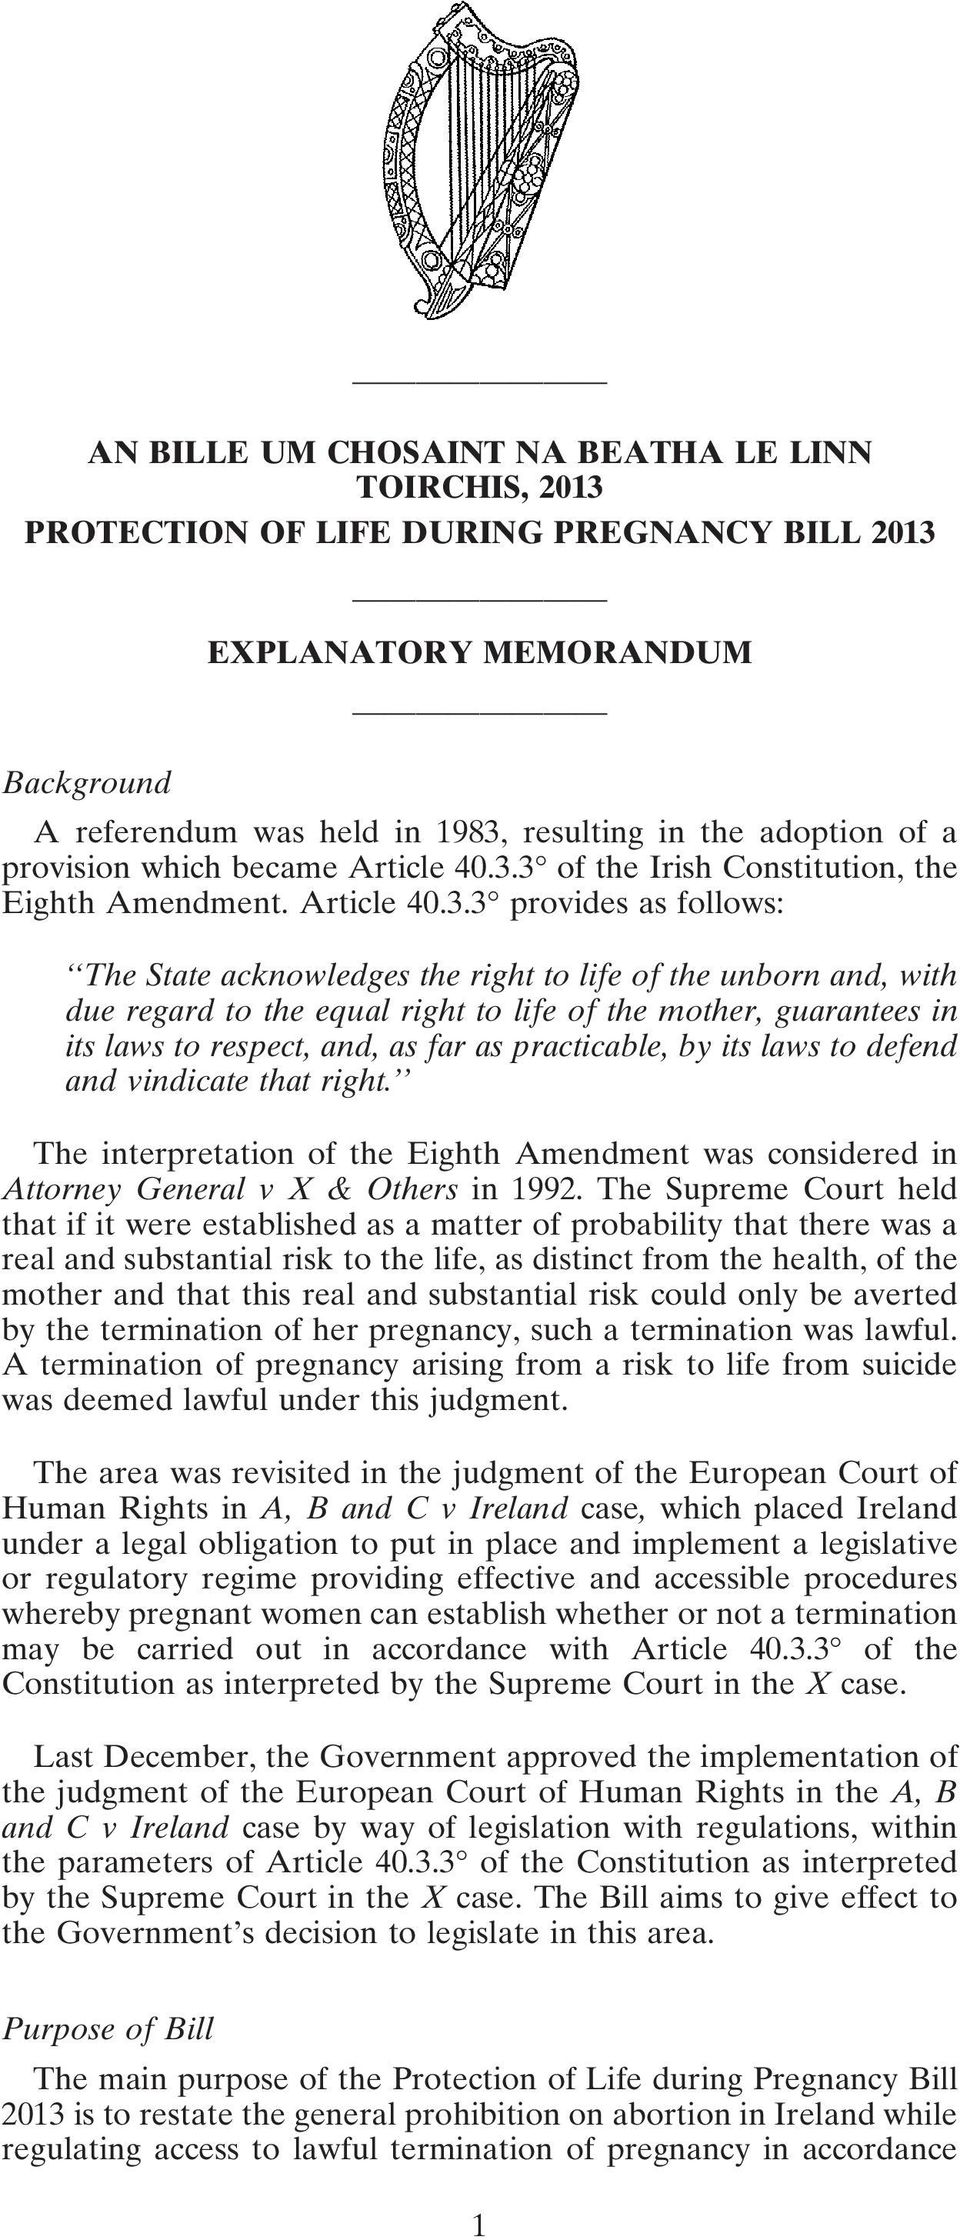 3 of the Irish Constitution, the Eighth Amendment. Article 40.3.3 provides as follows: The State acknowledges the right to life of the unborn and, with due regard to the equal right to life of the